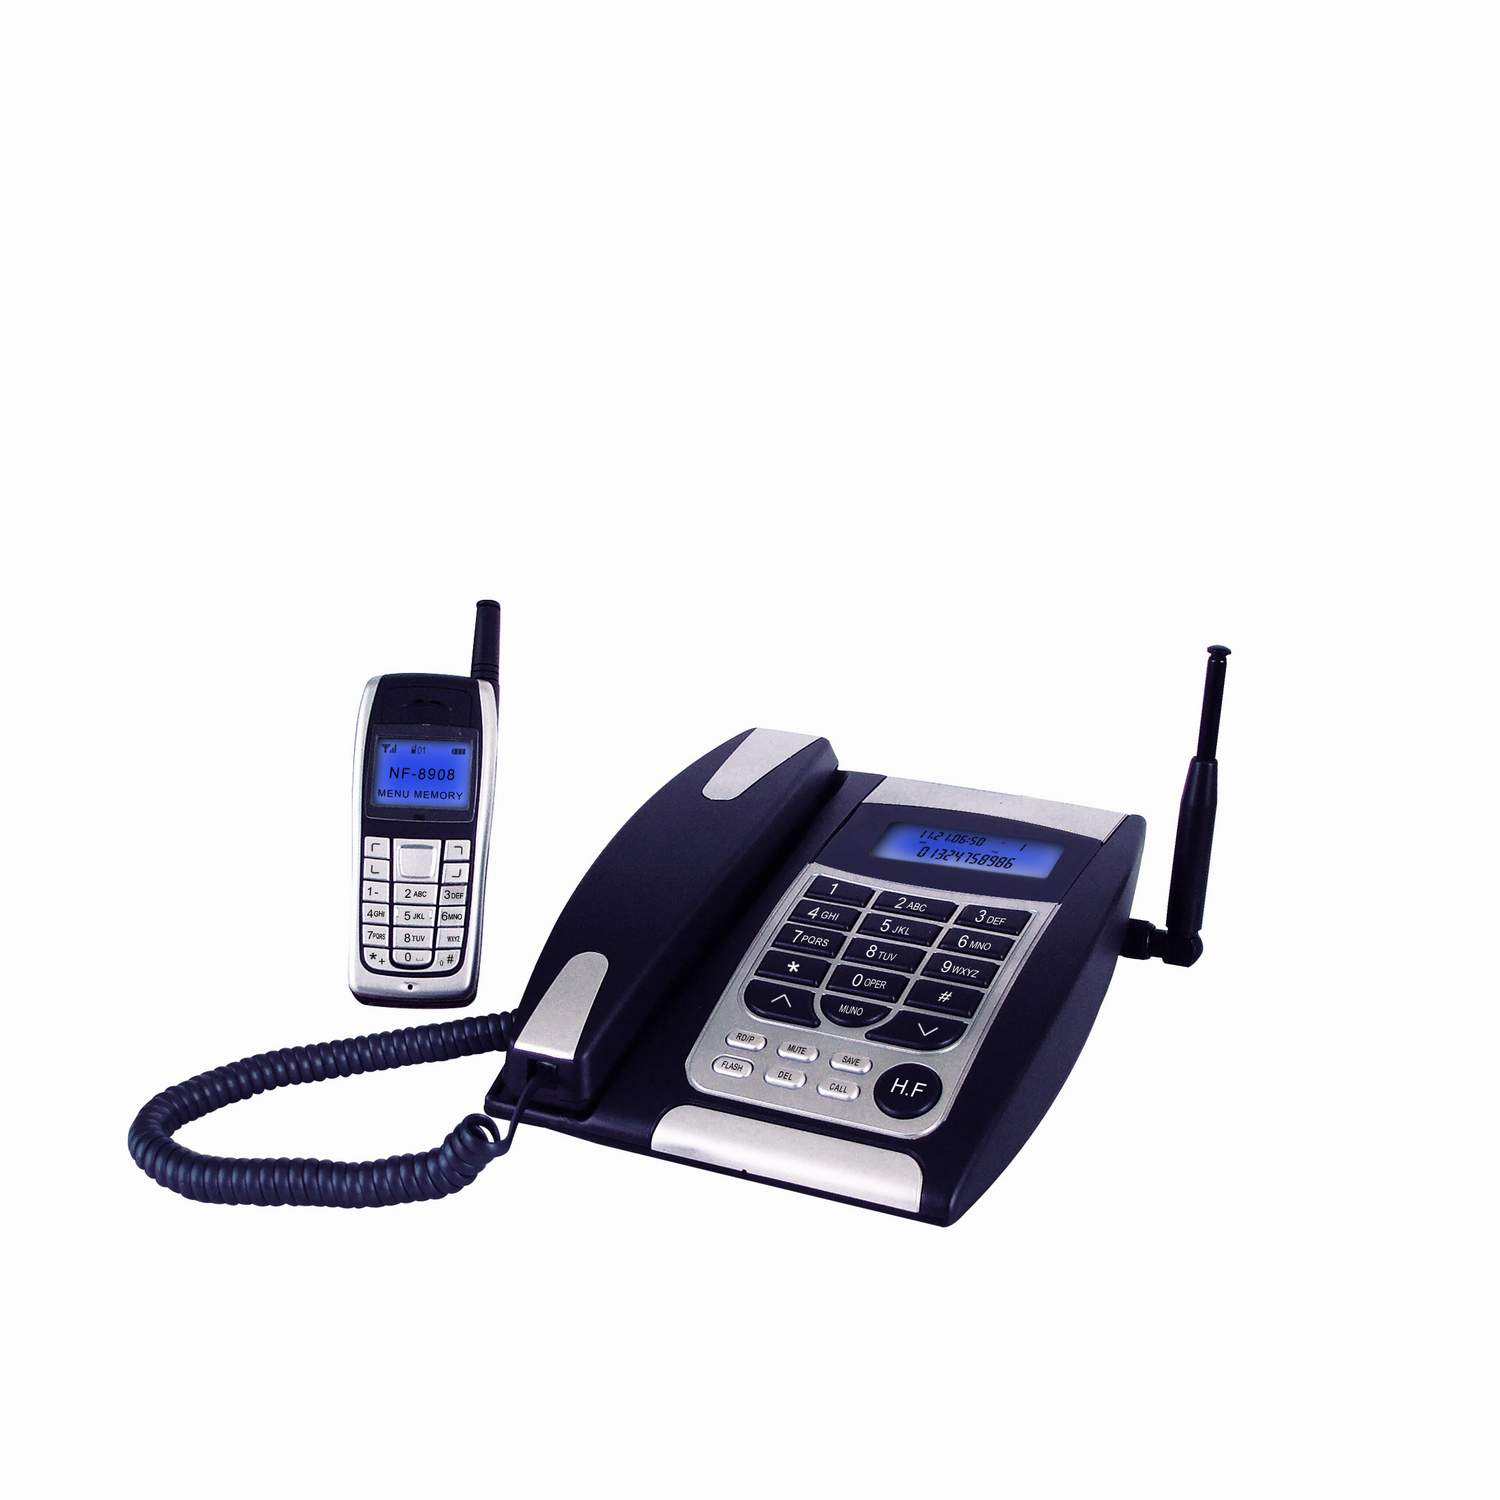 Displays Long Range Cordless Phone